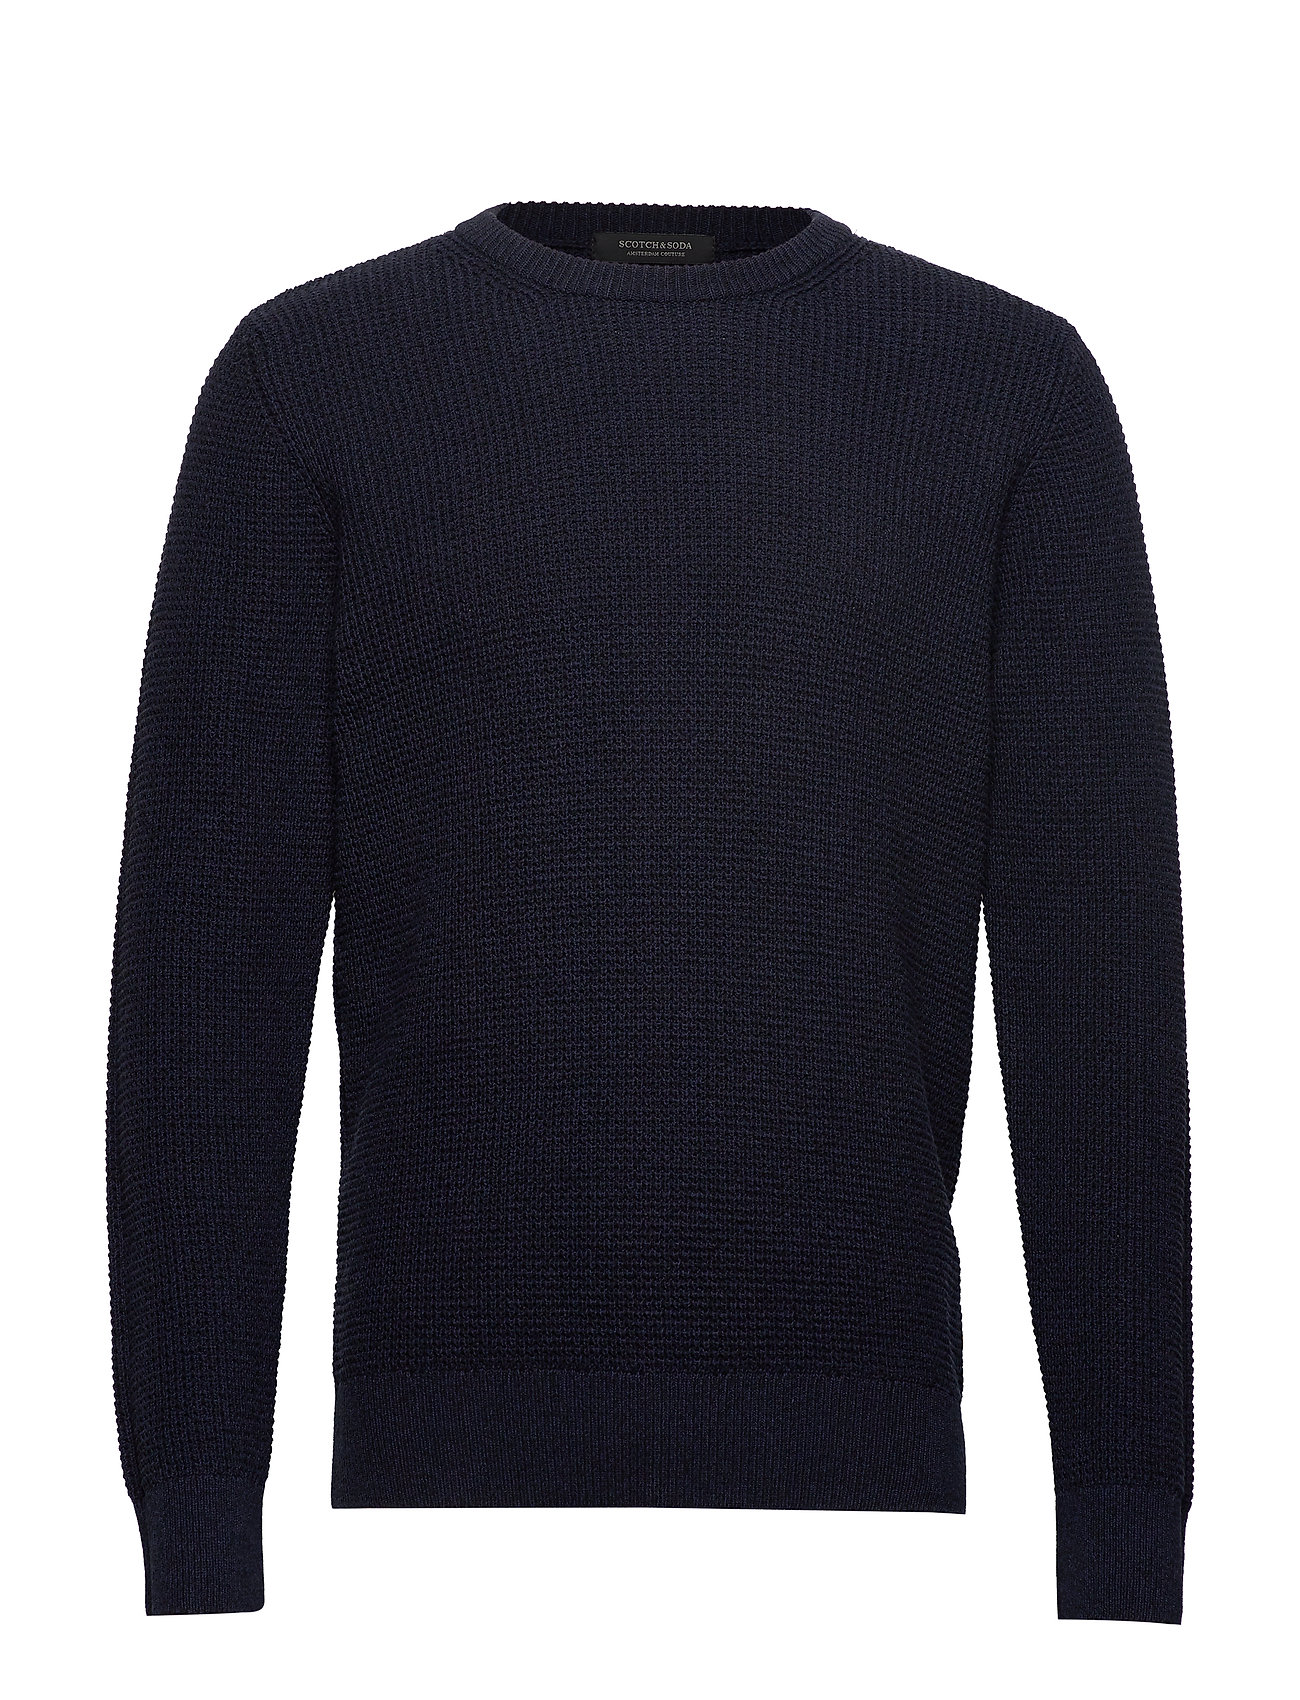 Scotch & Soda Structured crewneck pull in recycled yarns - NIGHT MELANGE